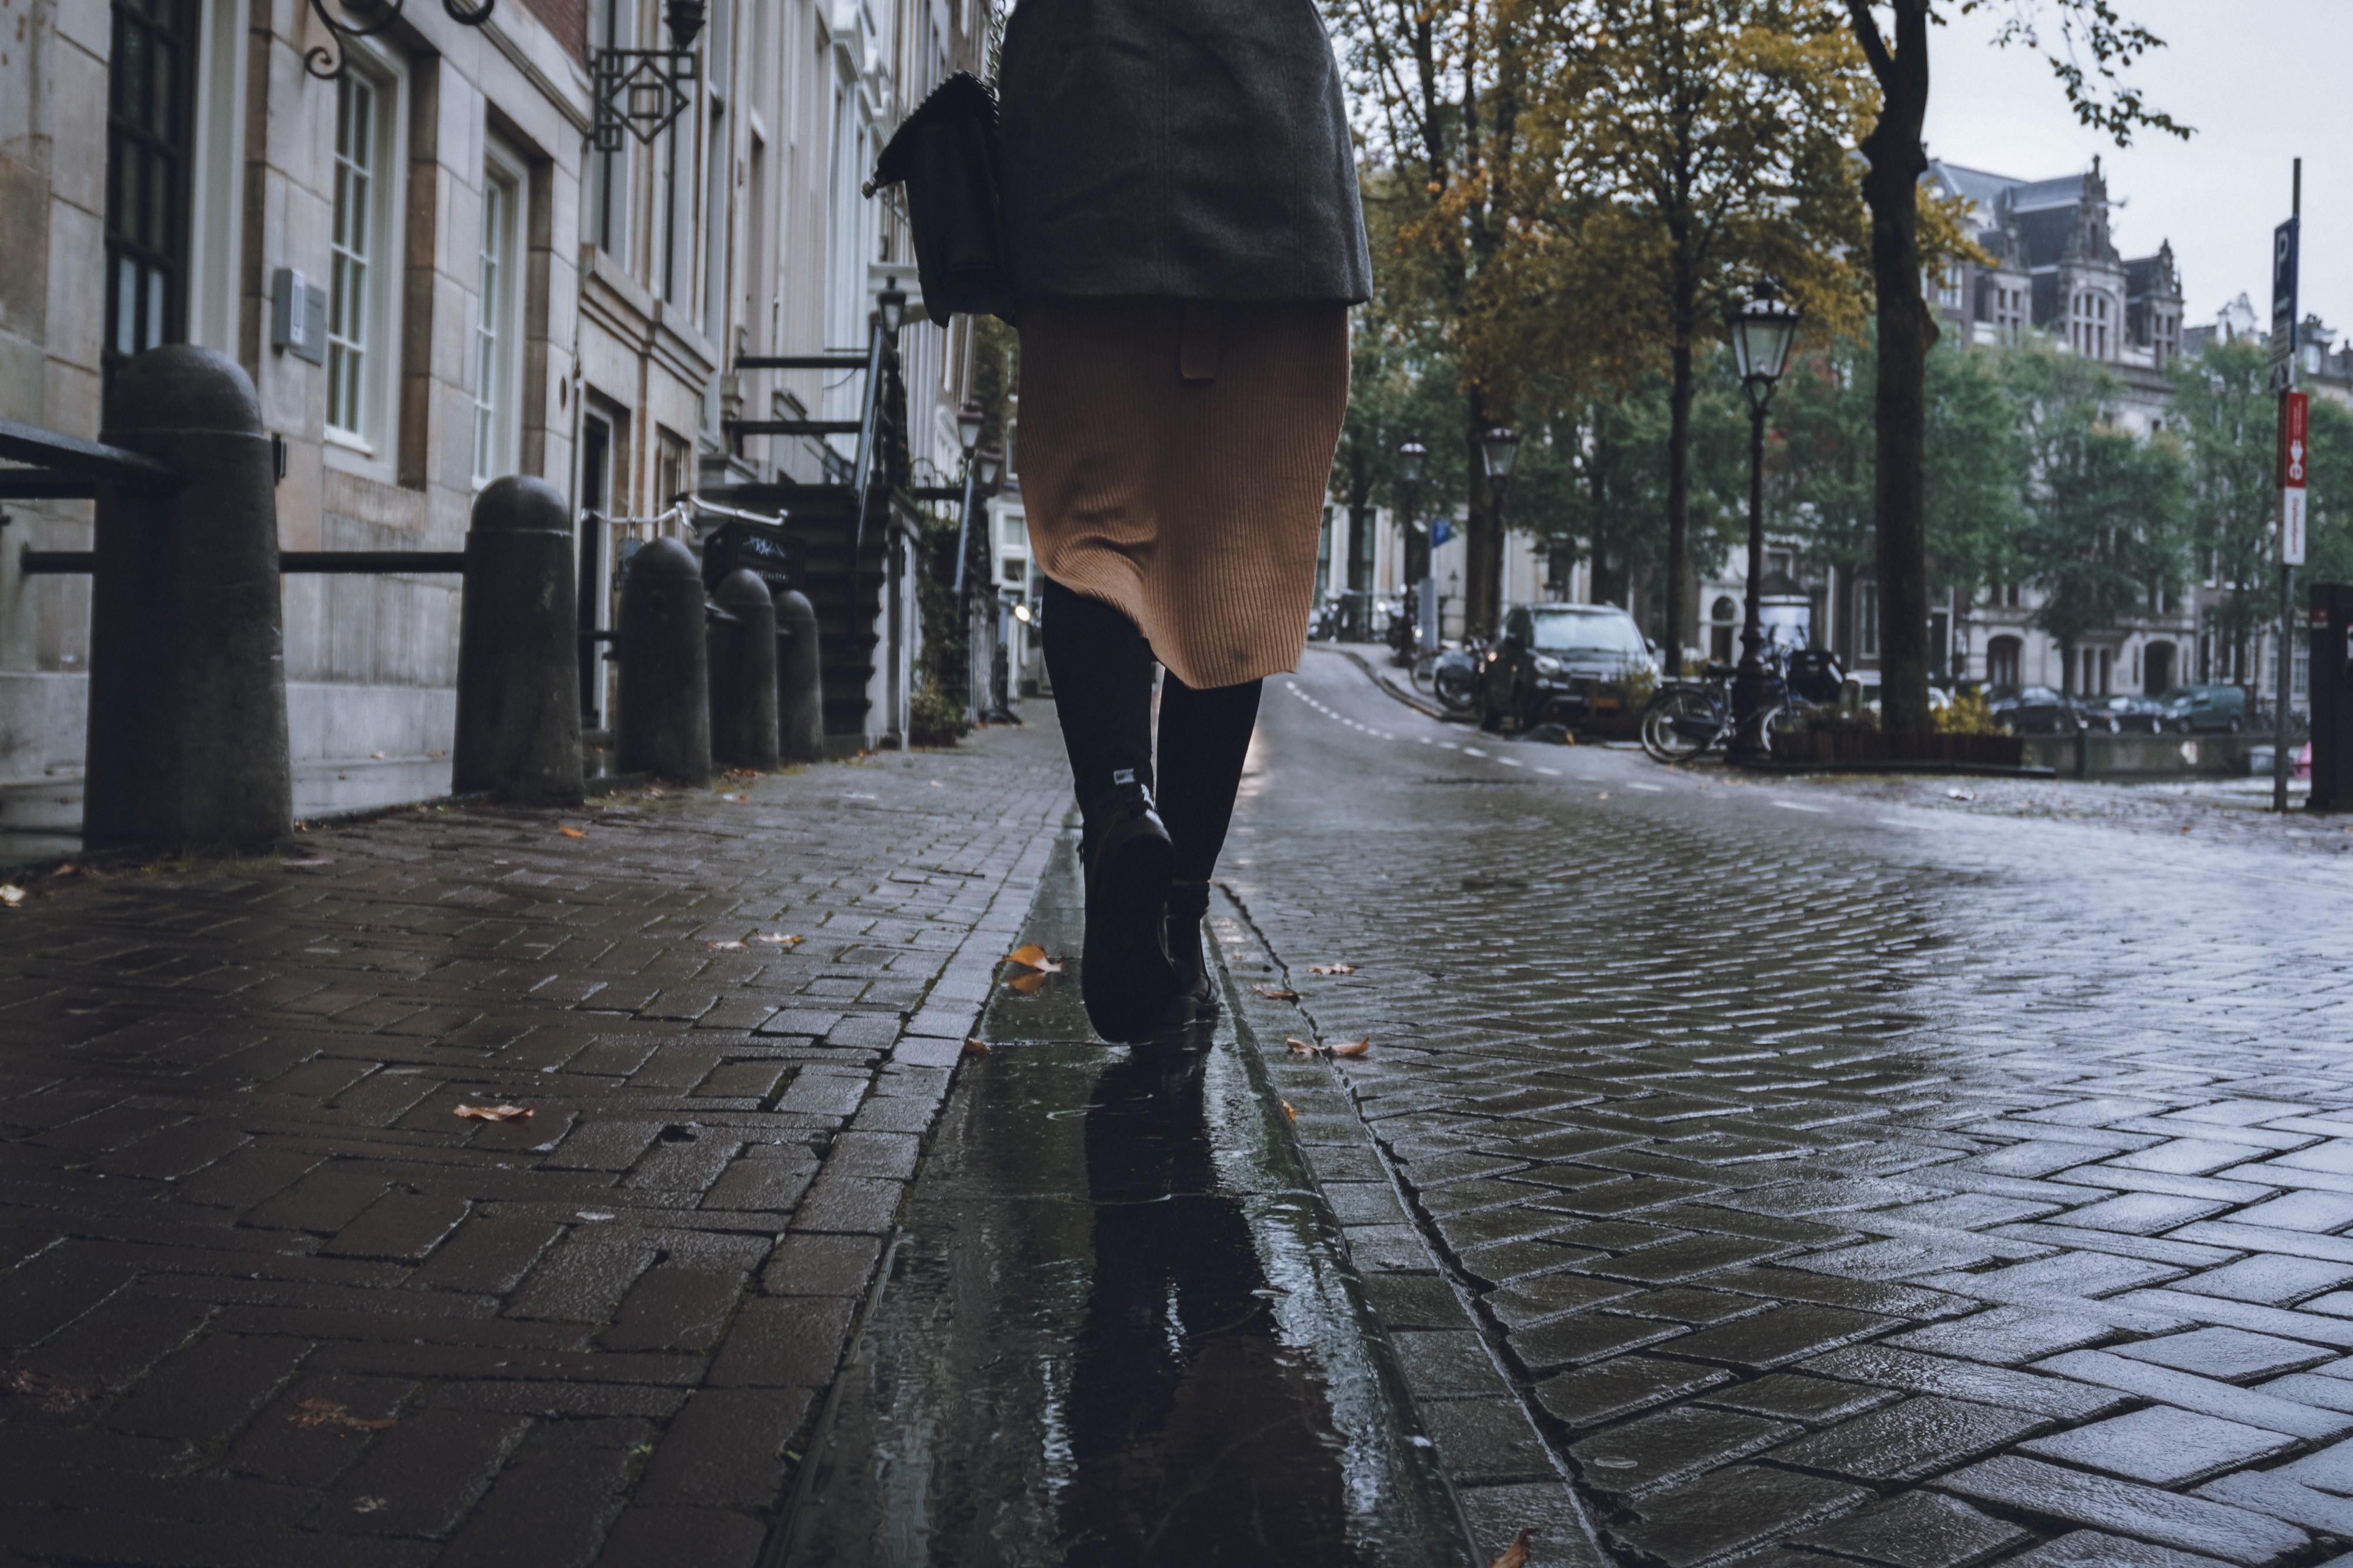 photo of a woman walking away from the camera down a cobblestone city street.